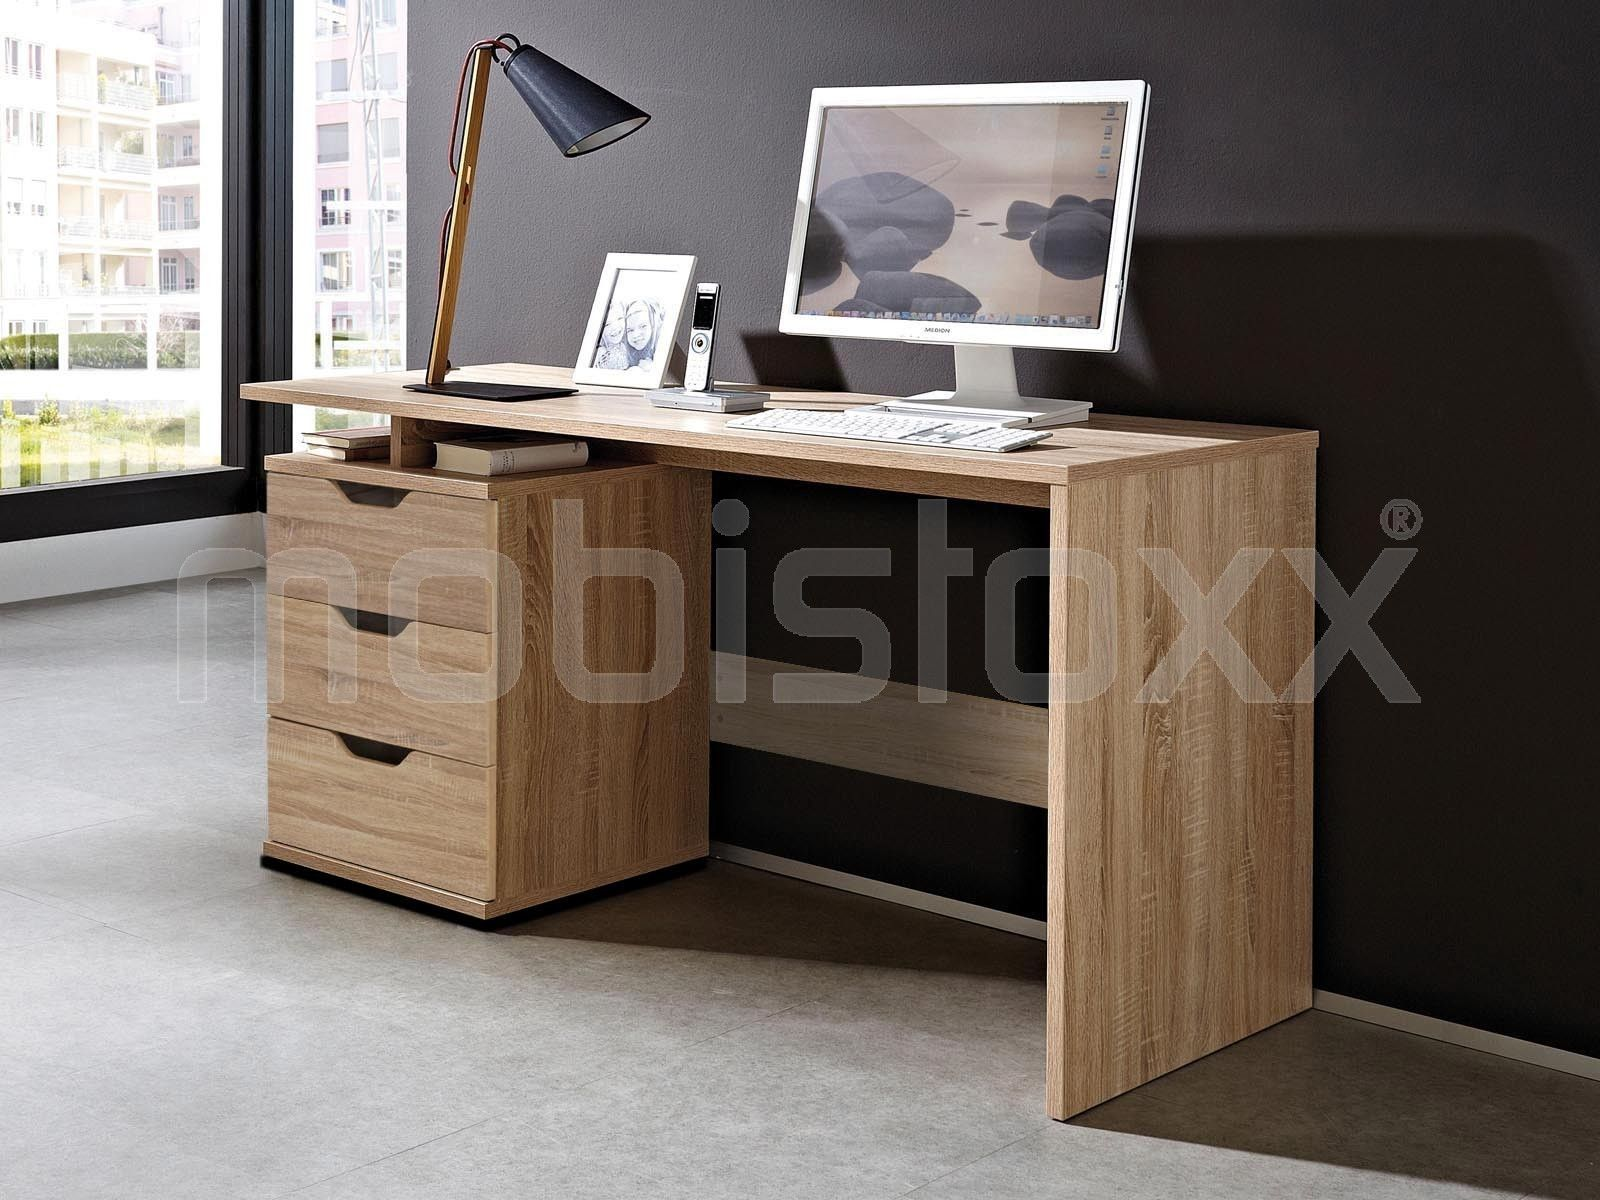 Interior Design Bureau Pour Ordinateur Petit Meuble Pour Imprimante Source Bureau Ordinateur Inspiration Desk Cheap Furniture Stores Ikea